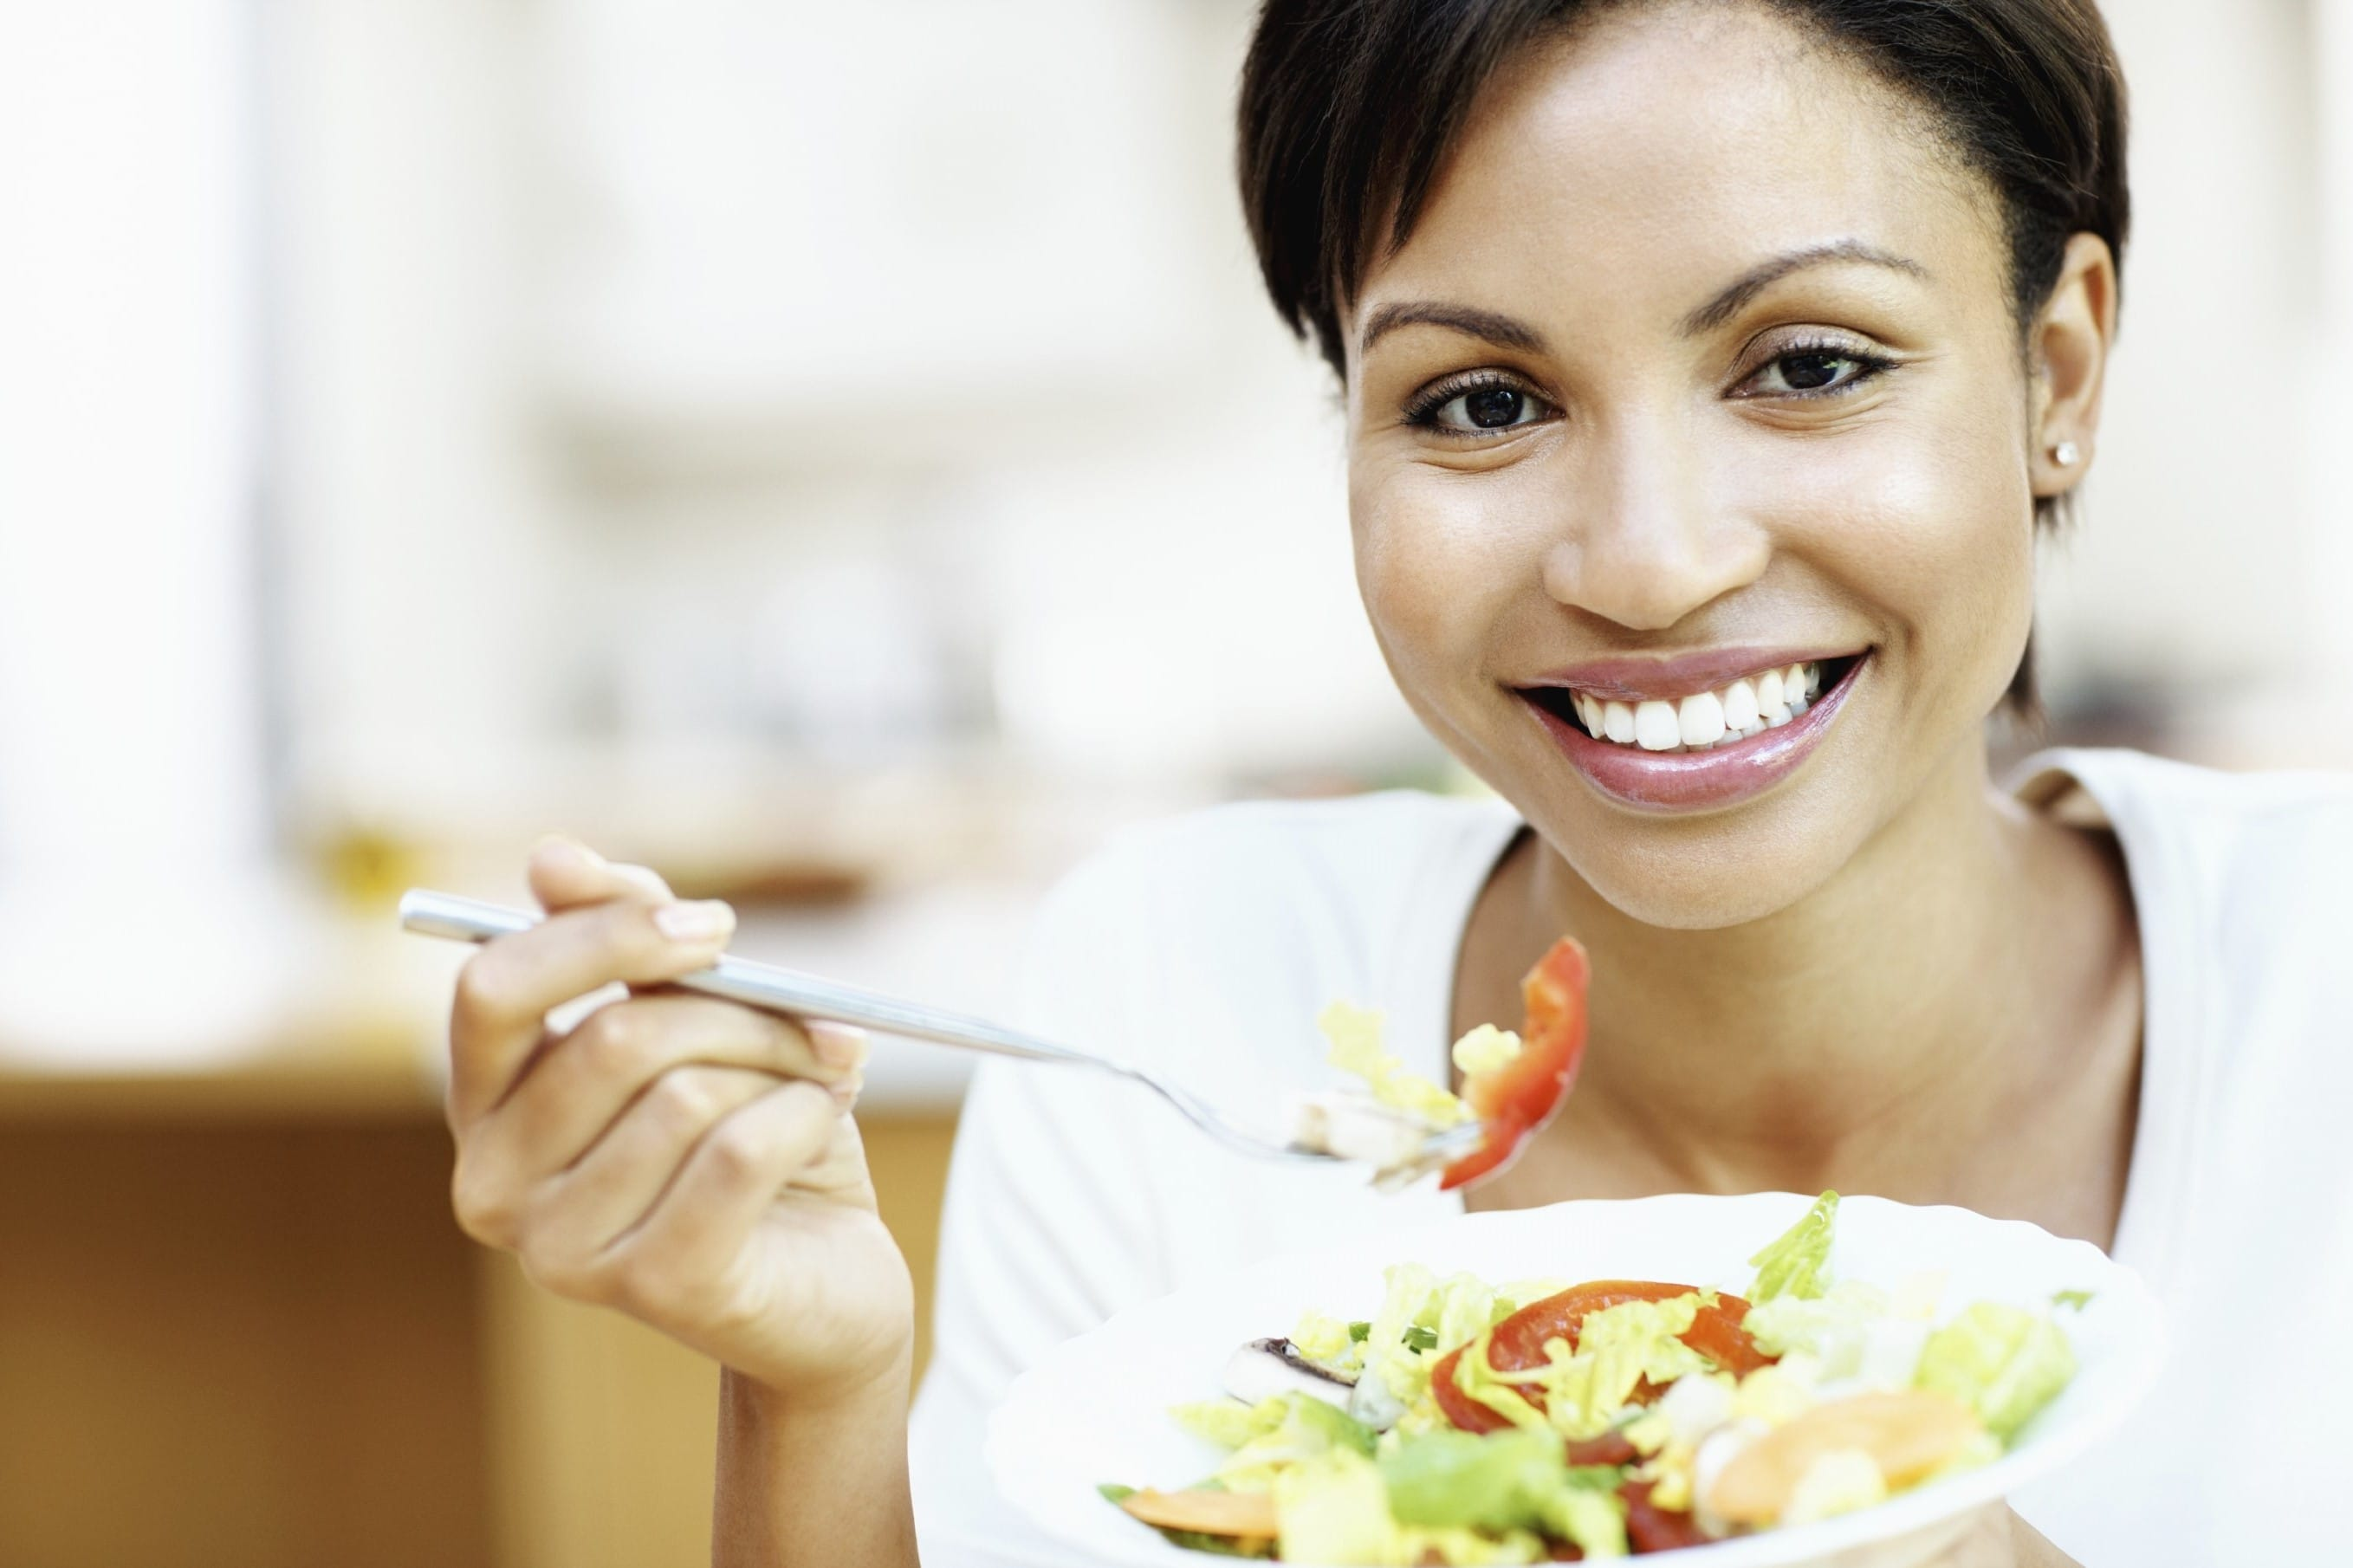 Lifestyle_Woman Eating Salad_African American